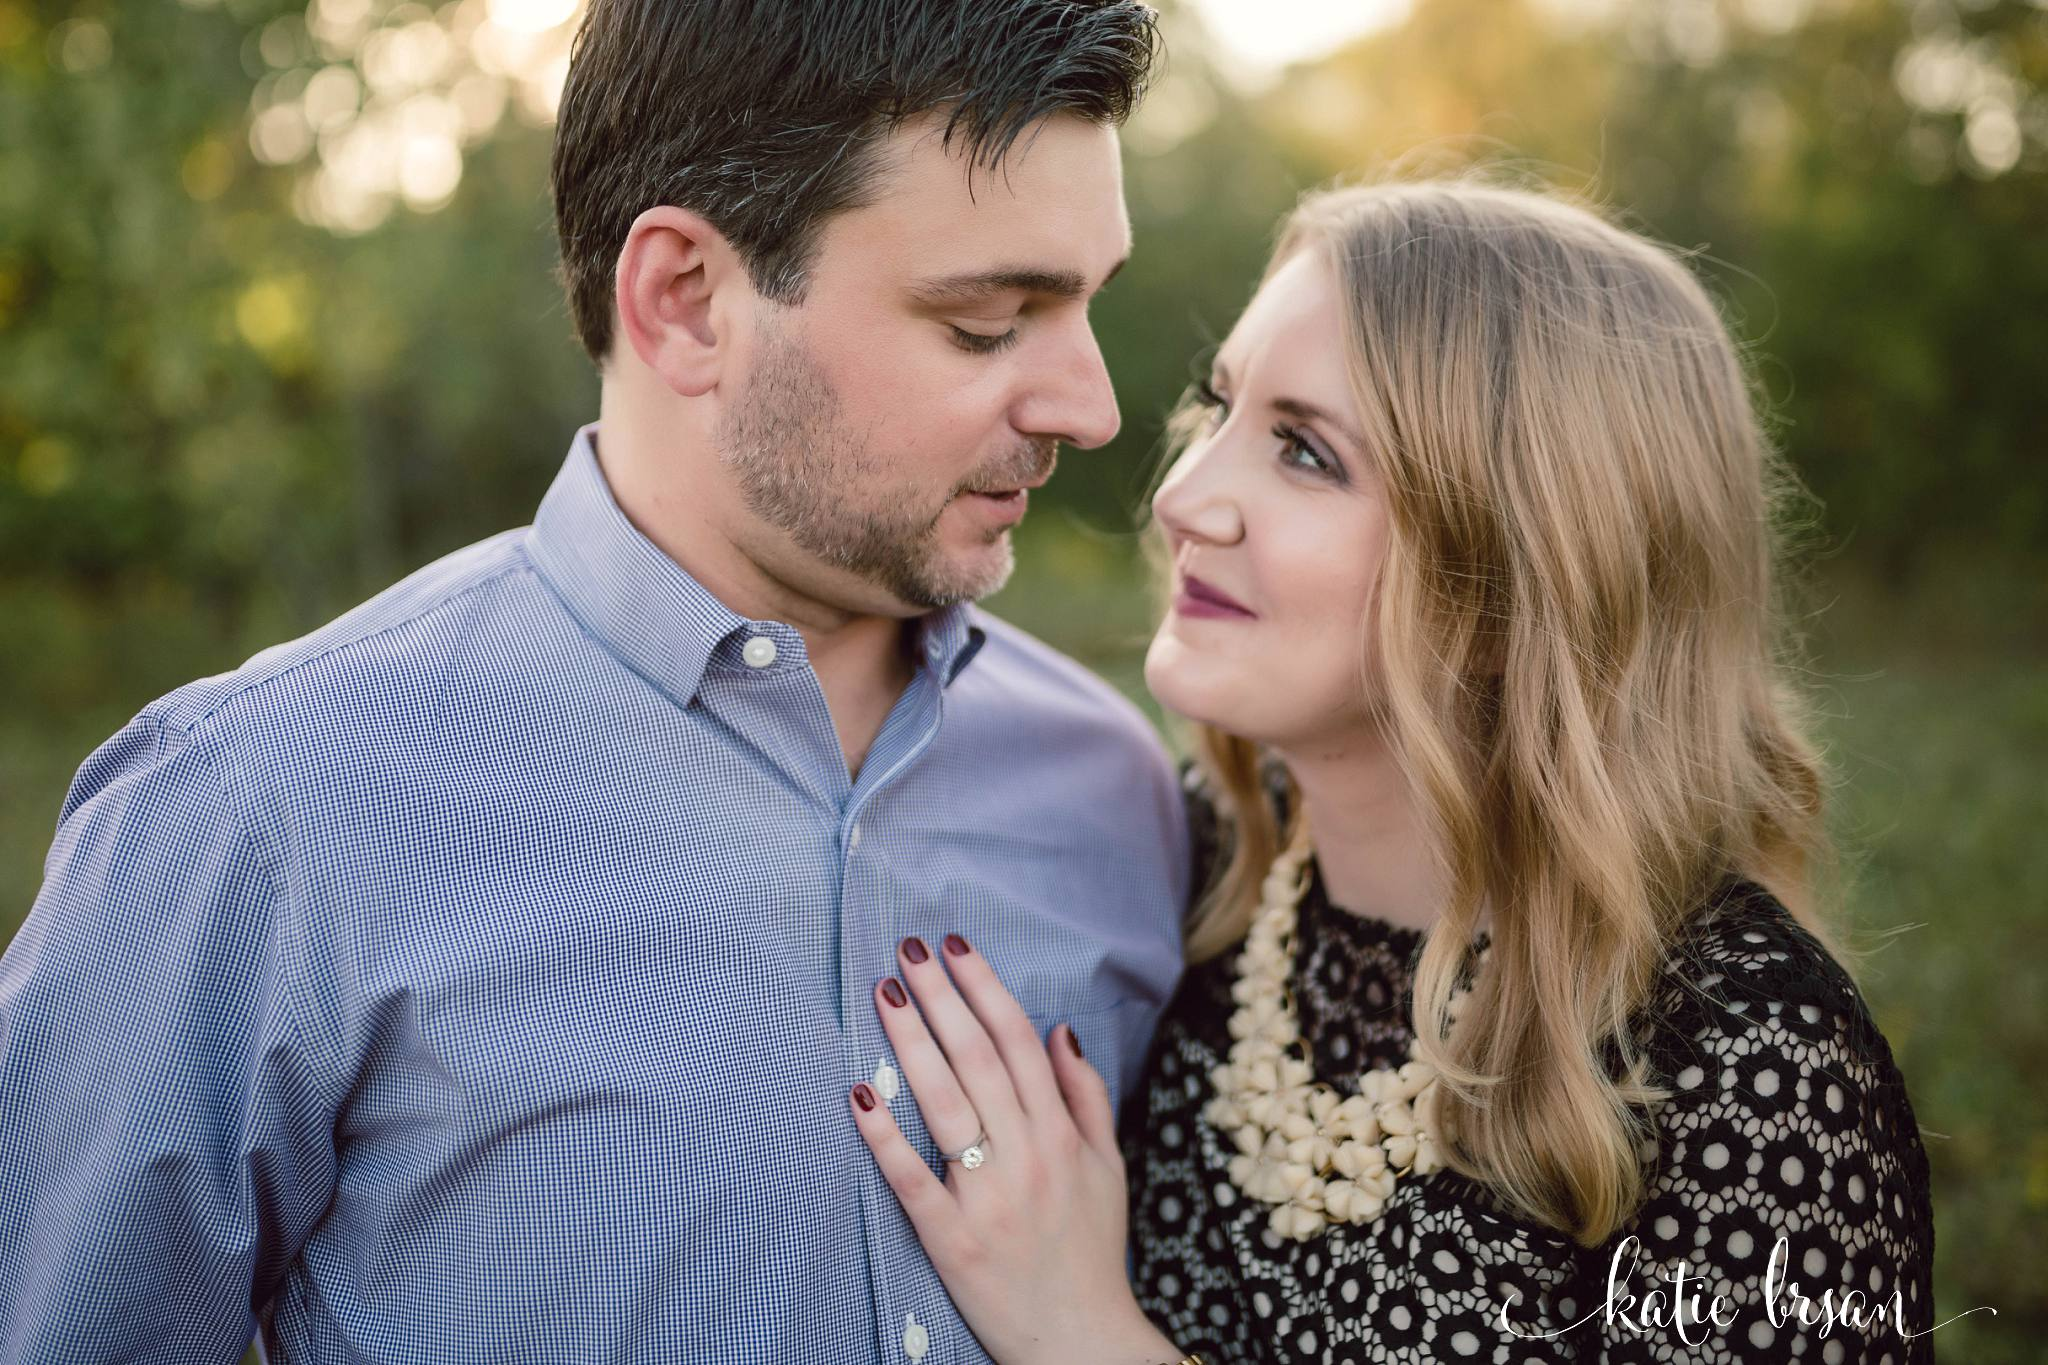 Mokena_EngagementSession_RuffledFeathers_Wedding_0949.jpg